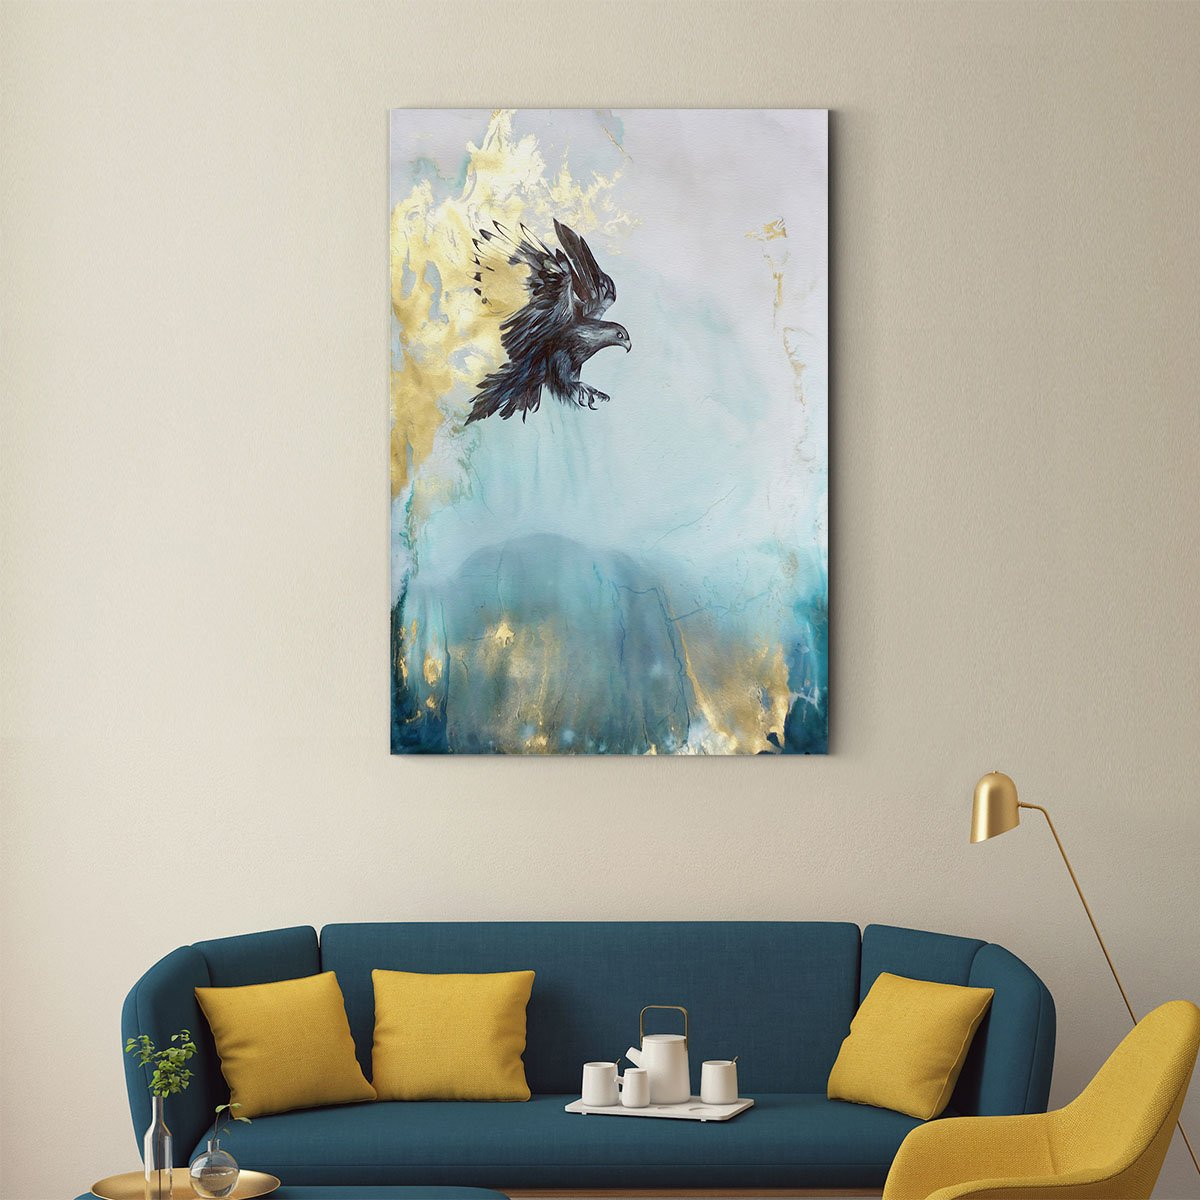 Soaring eagle abstract decorative painting 001